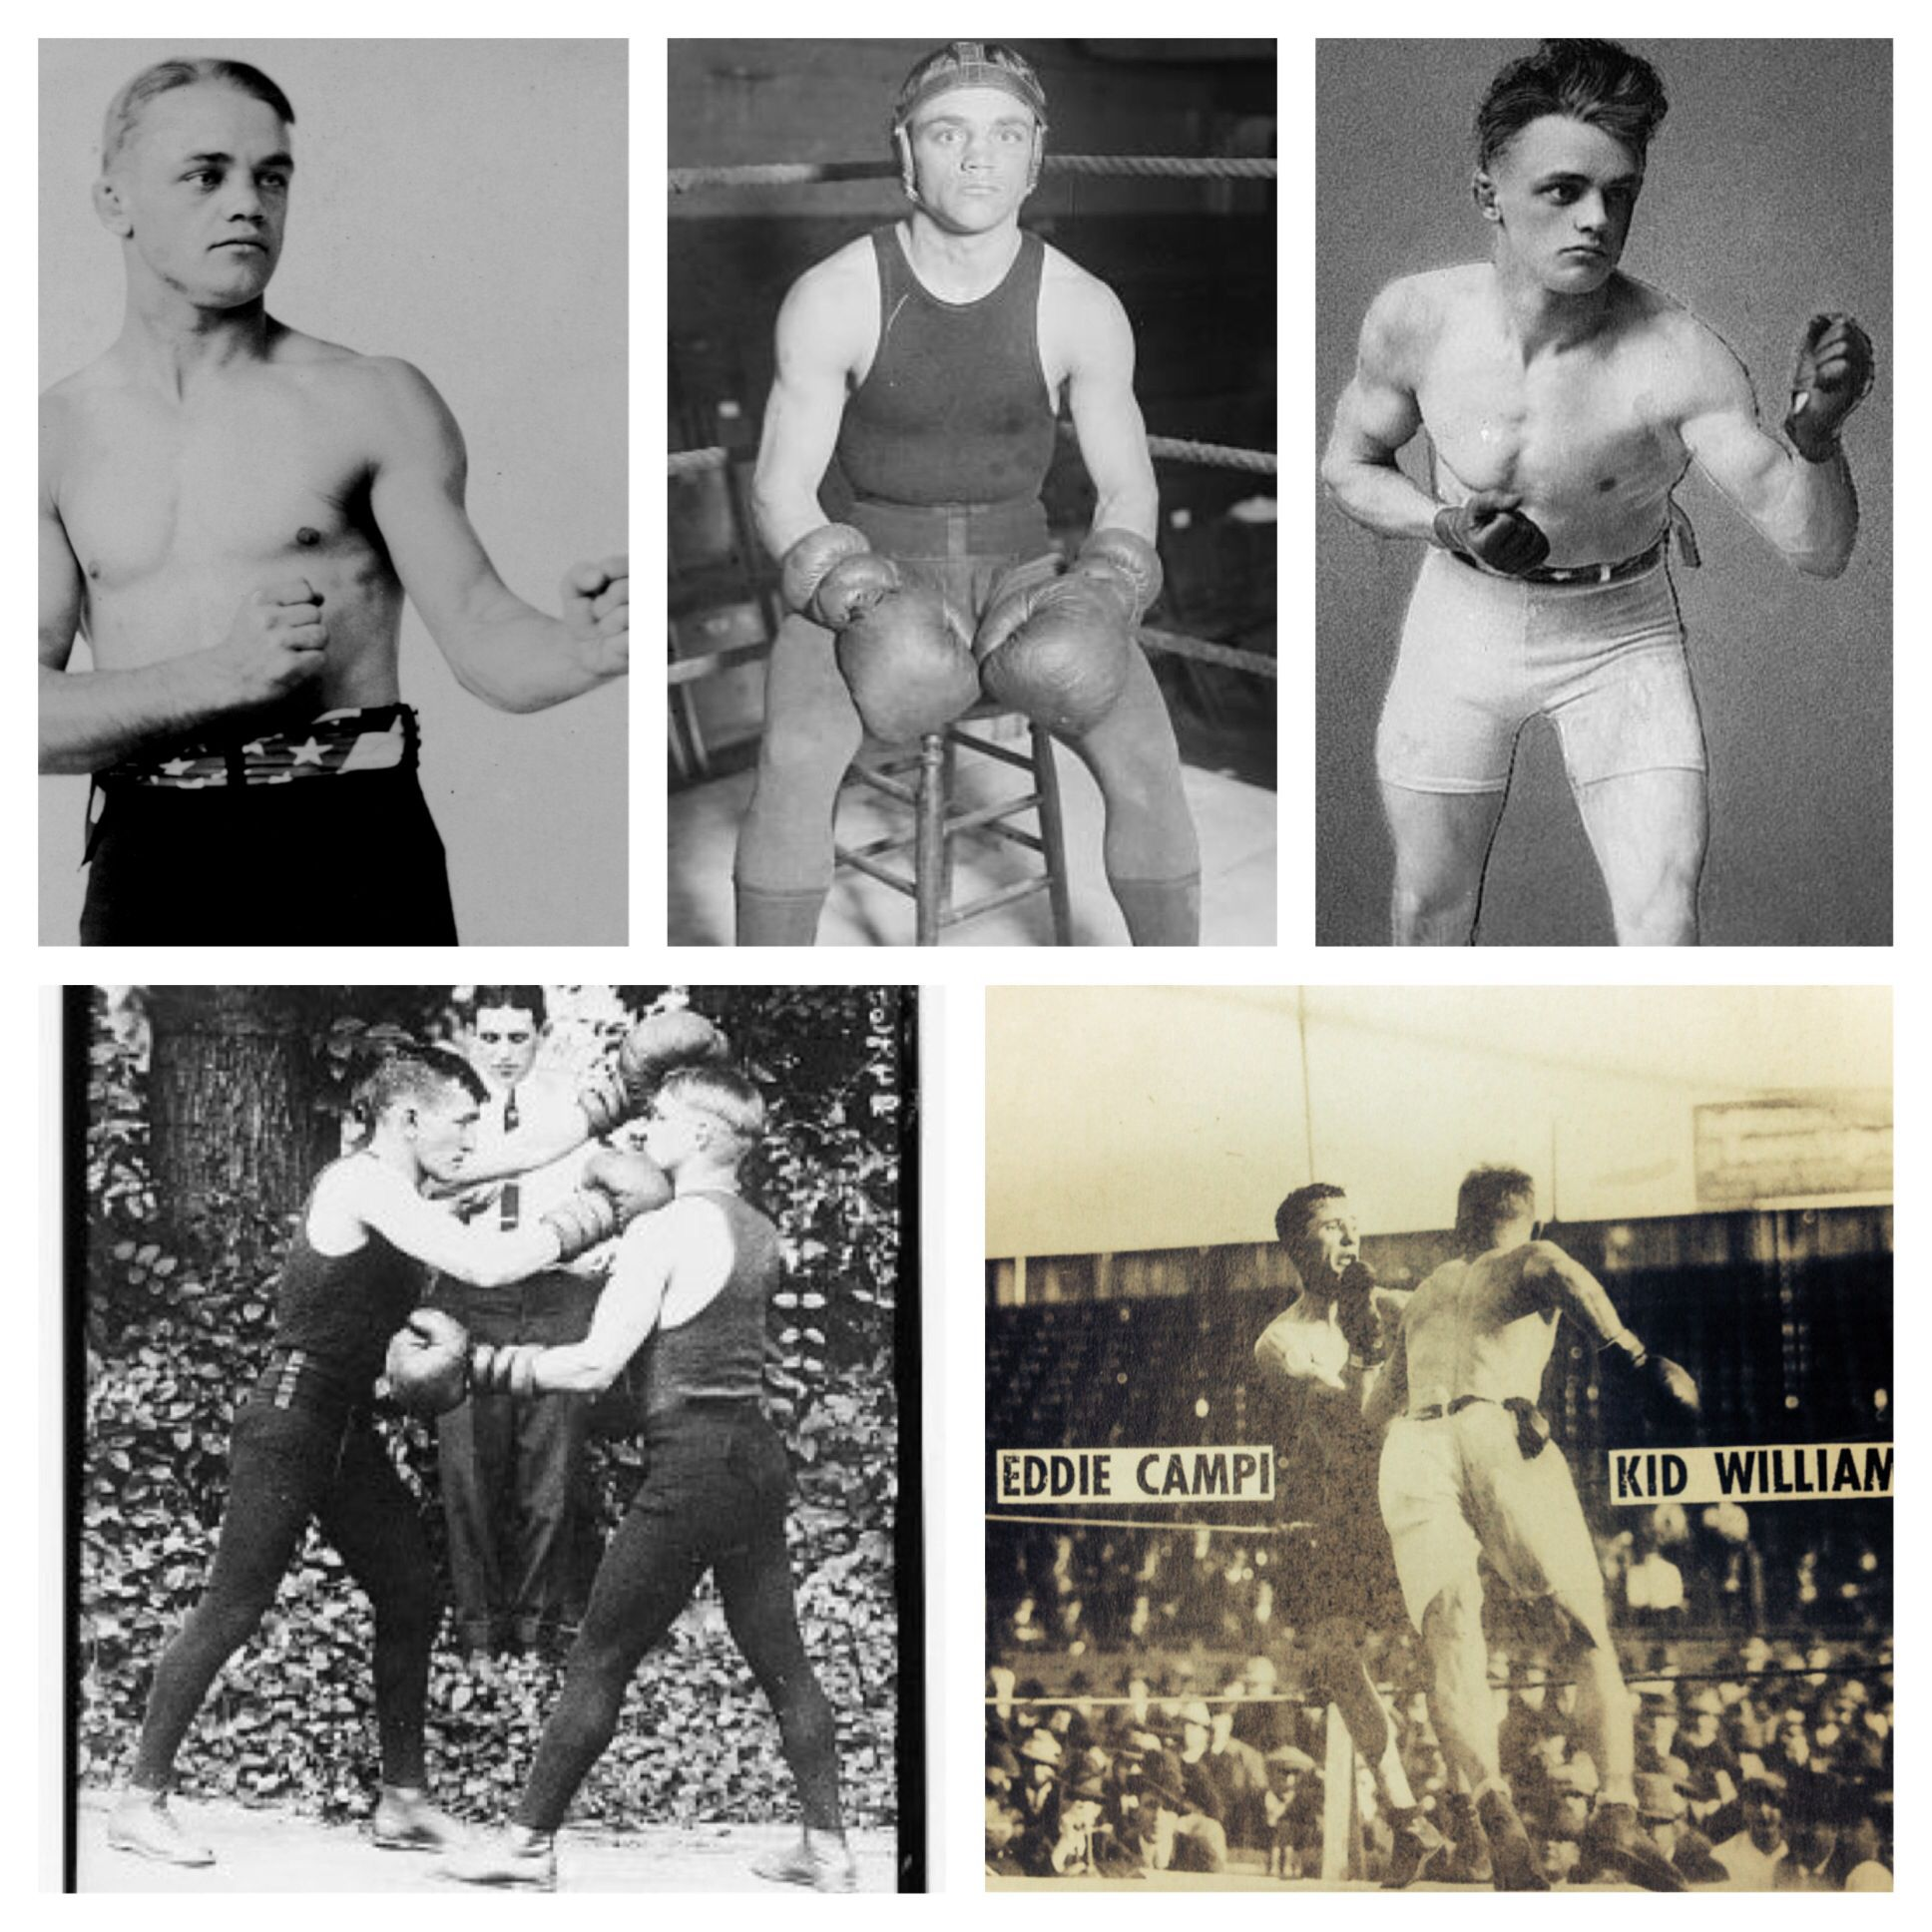 Top Row L-R: Three fearsome fighting poses of Kid Williams  Bottom Row L-R: Williams spars, and Williams with one of his signature rushes at his great rival Eddie Campi